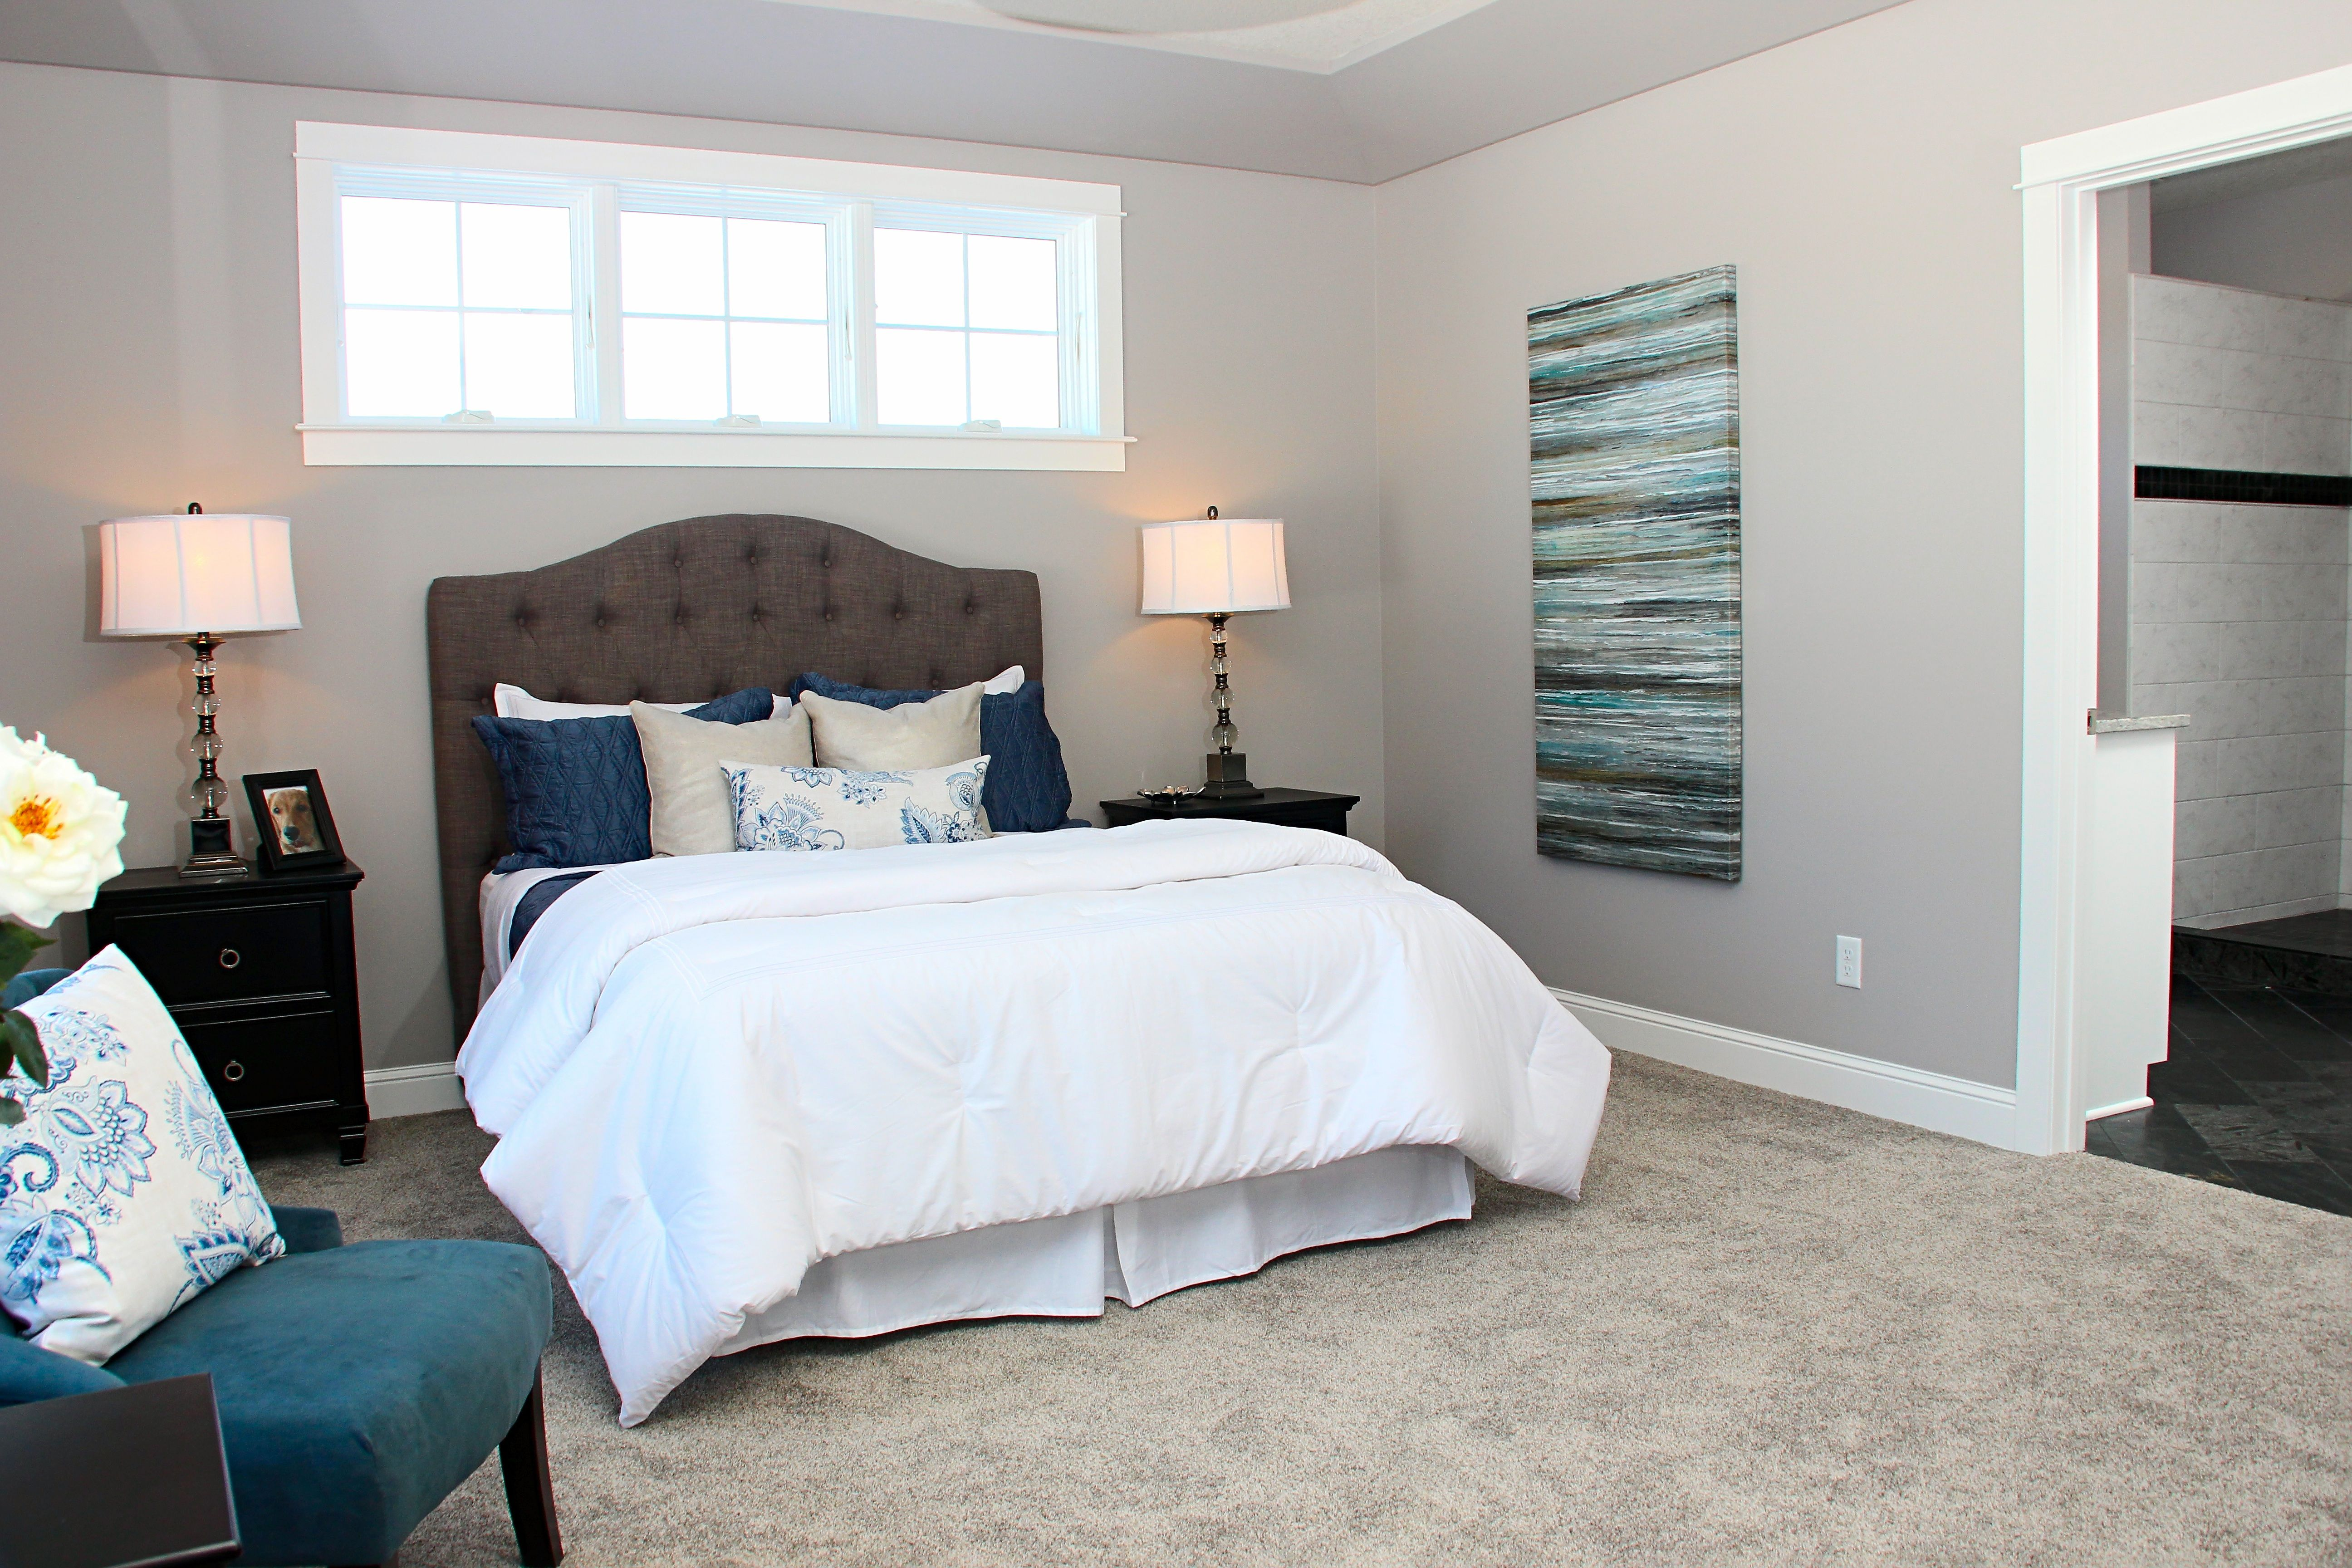 Pin by Green Apple Interiors on Bedrooms | Pinterest | Interior ...